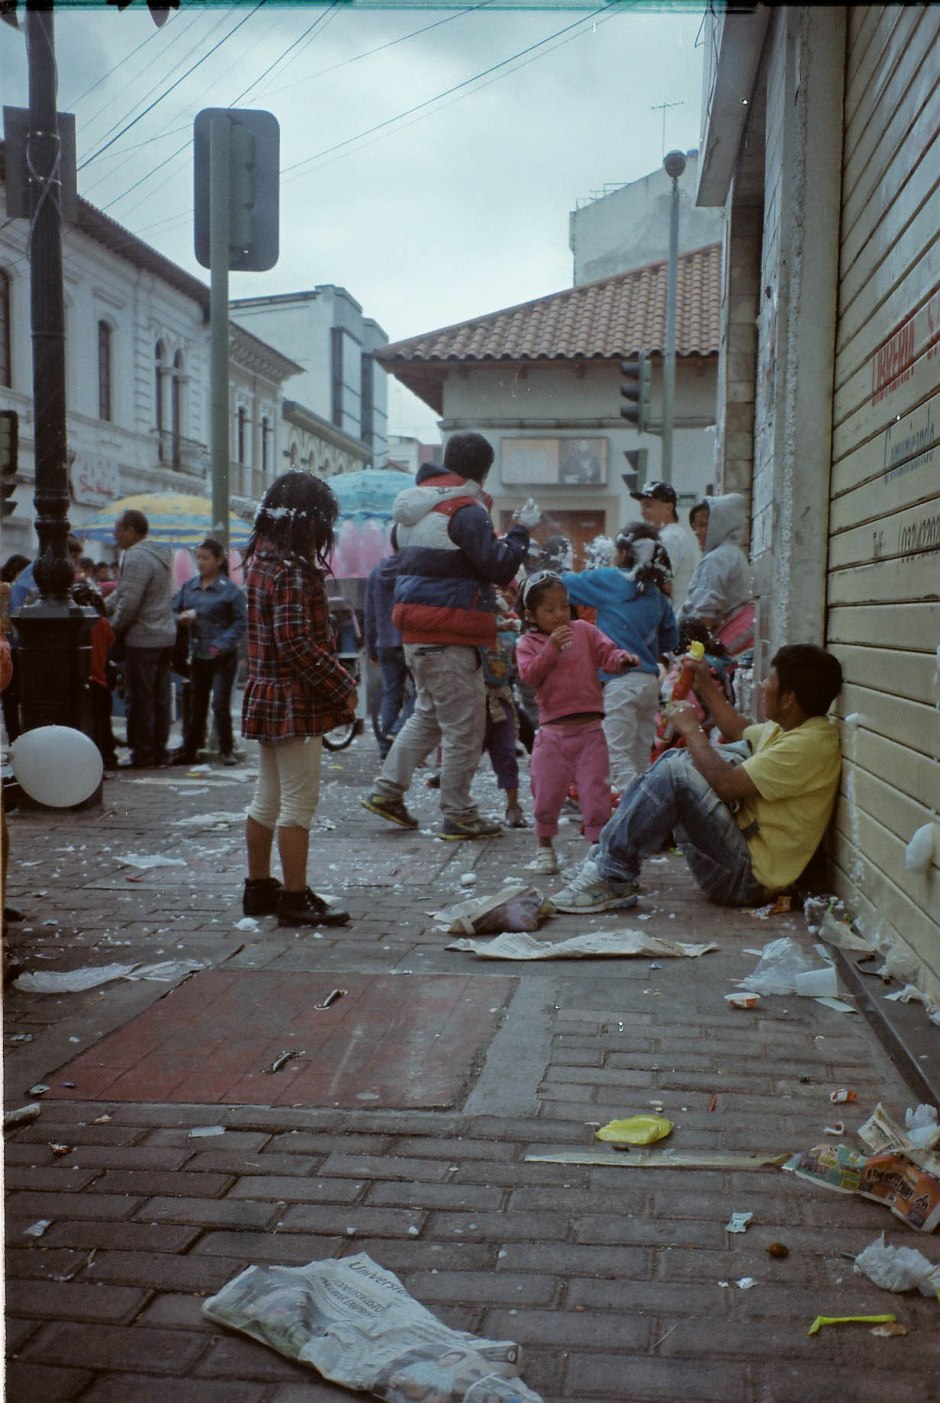 A few of the 20,000 people that travel to celebrate carnaval in the city of Ambato spray each other with espuma. It is impossible to walk outside without being attacked by this foamy shaving cream substance and it is unadvisable to travel these areas if not ready to partake in days of parades, outdoor concerts, and the endless running/chasing of these espuma wars. Ambato, Ecuador.